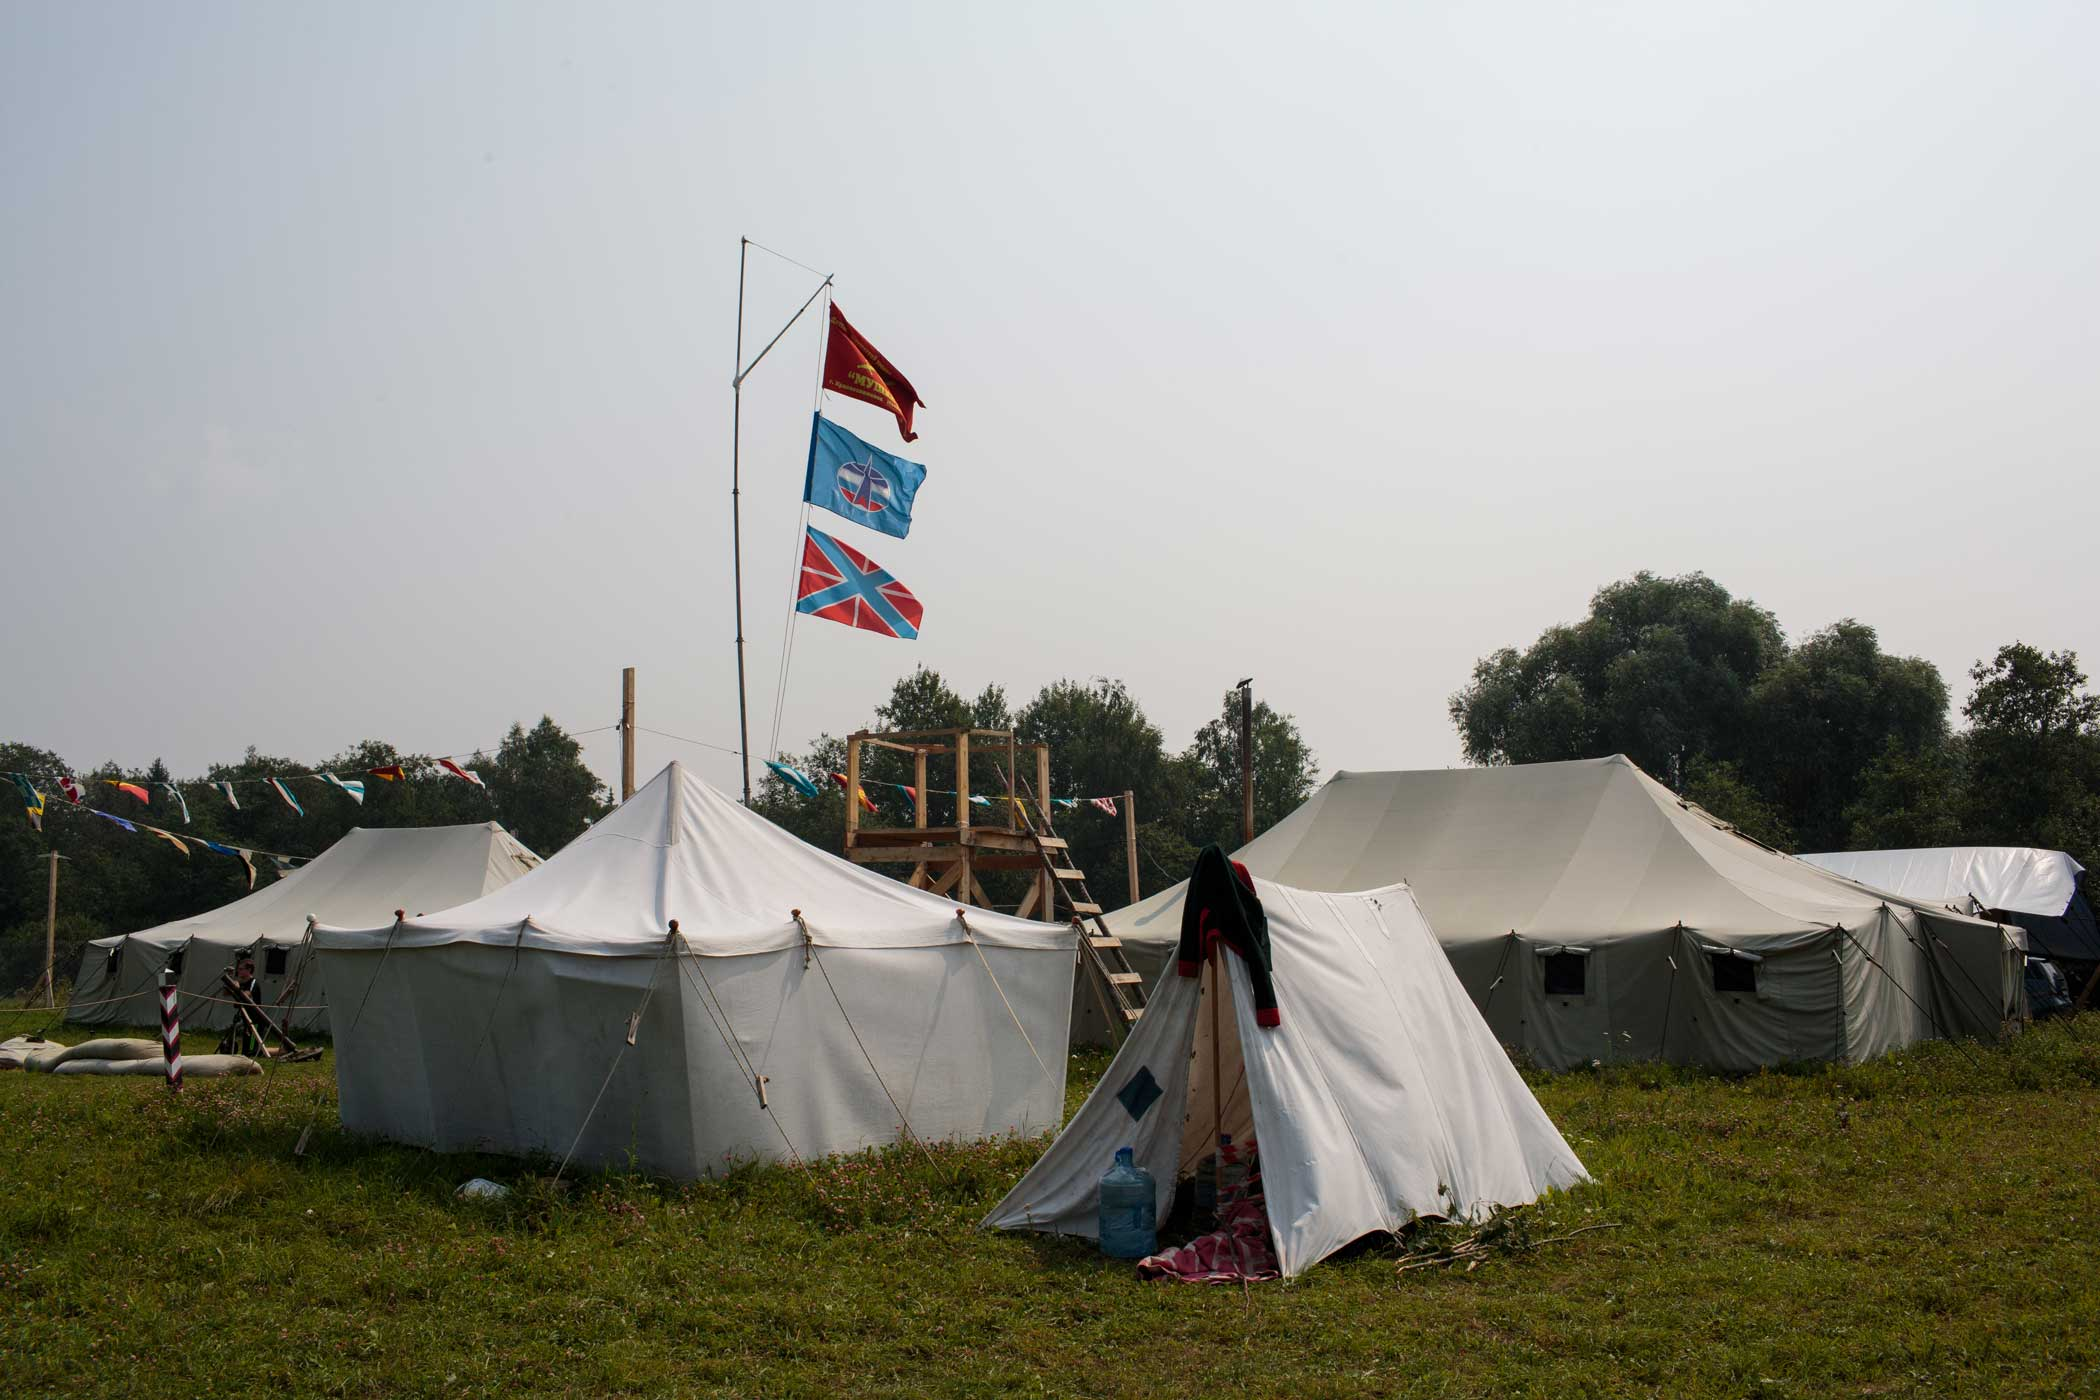 Historical-War Camp in Borodino, Russia. Borodino is where the deadliest day of the Napoleonic War was fought in 1812.